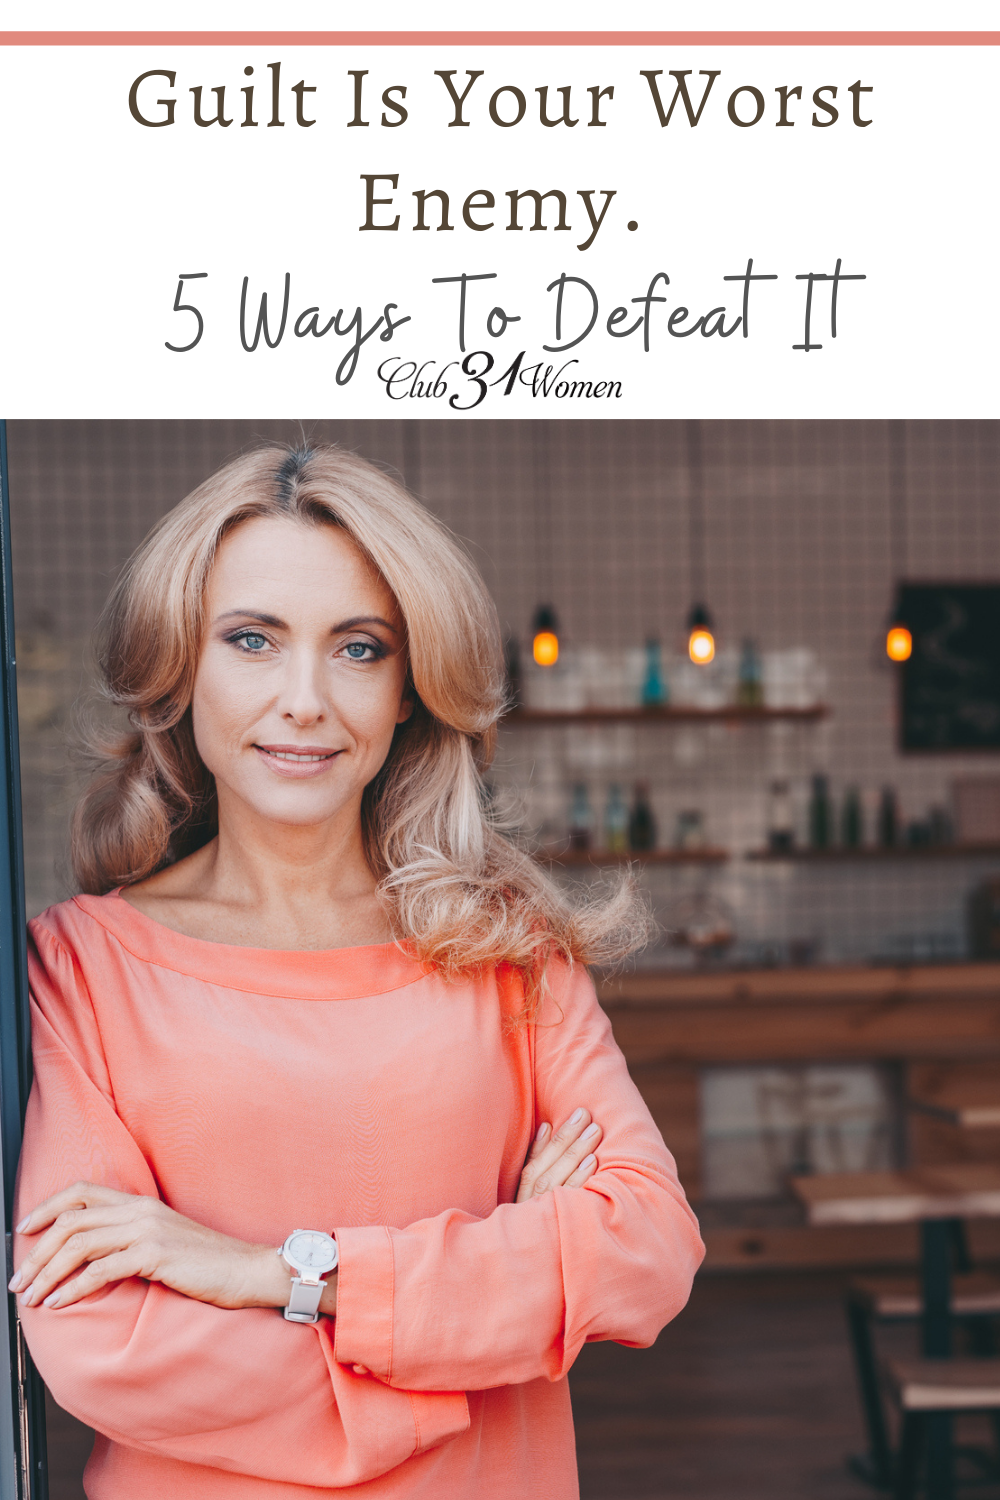 Guilt is a heavy burden that doesn't need to weigh you down. But you must recognize it, address it, and let it go to thrive. via @Club31Women